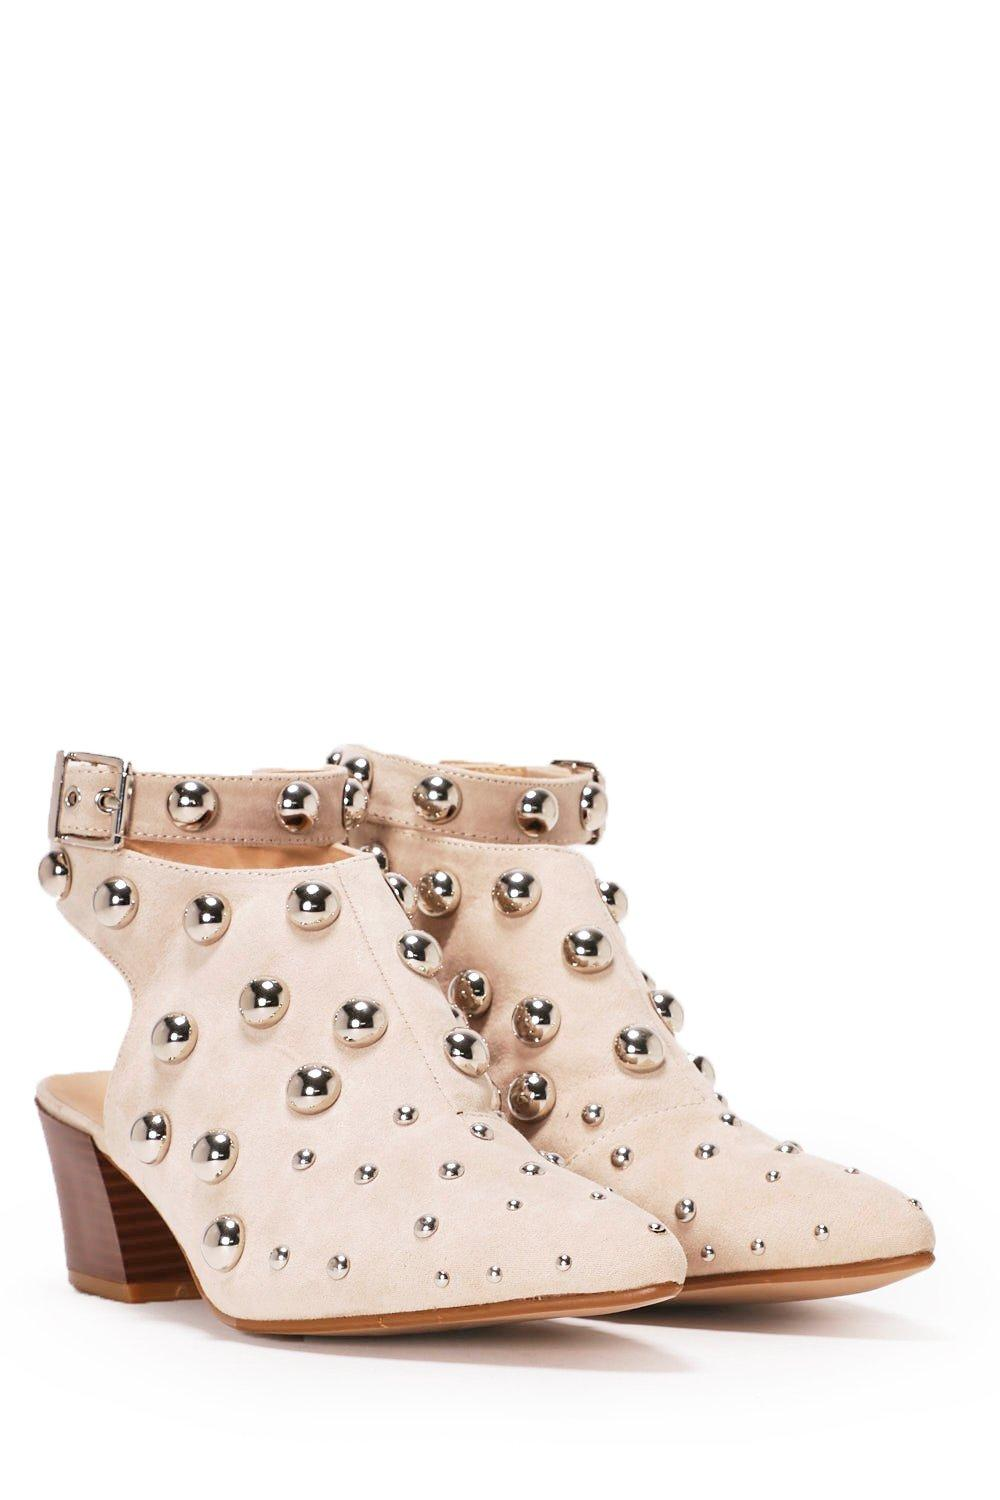 Balls To The Wall Studded Ankle Boot Shop Clothes At Nasty Gal Slingback Leather Boots